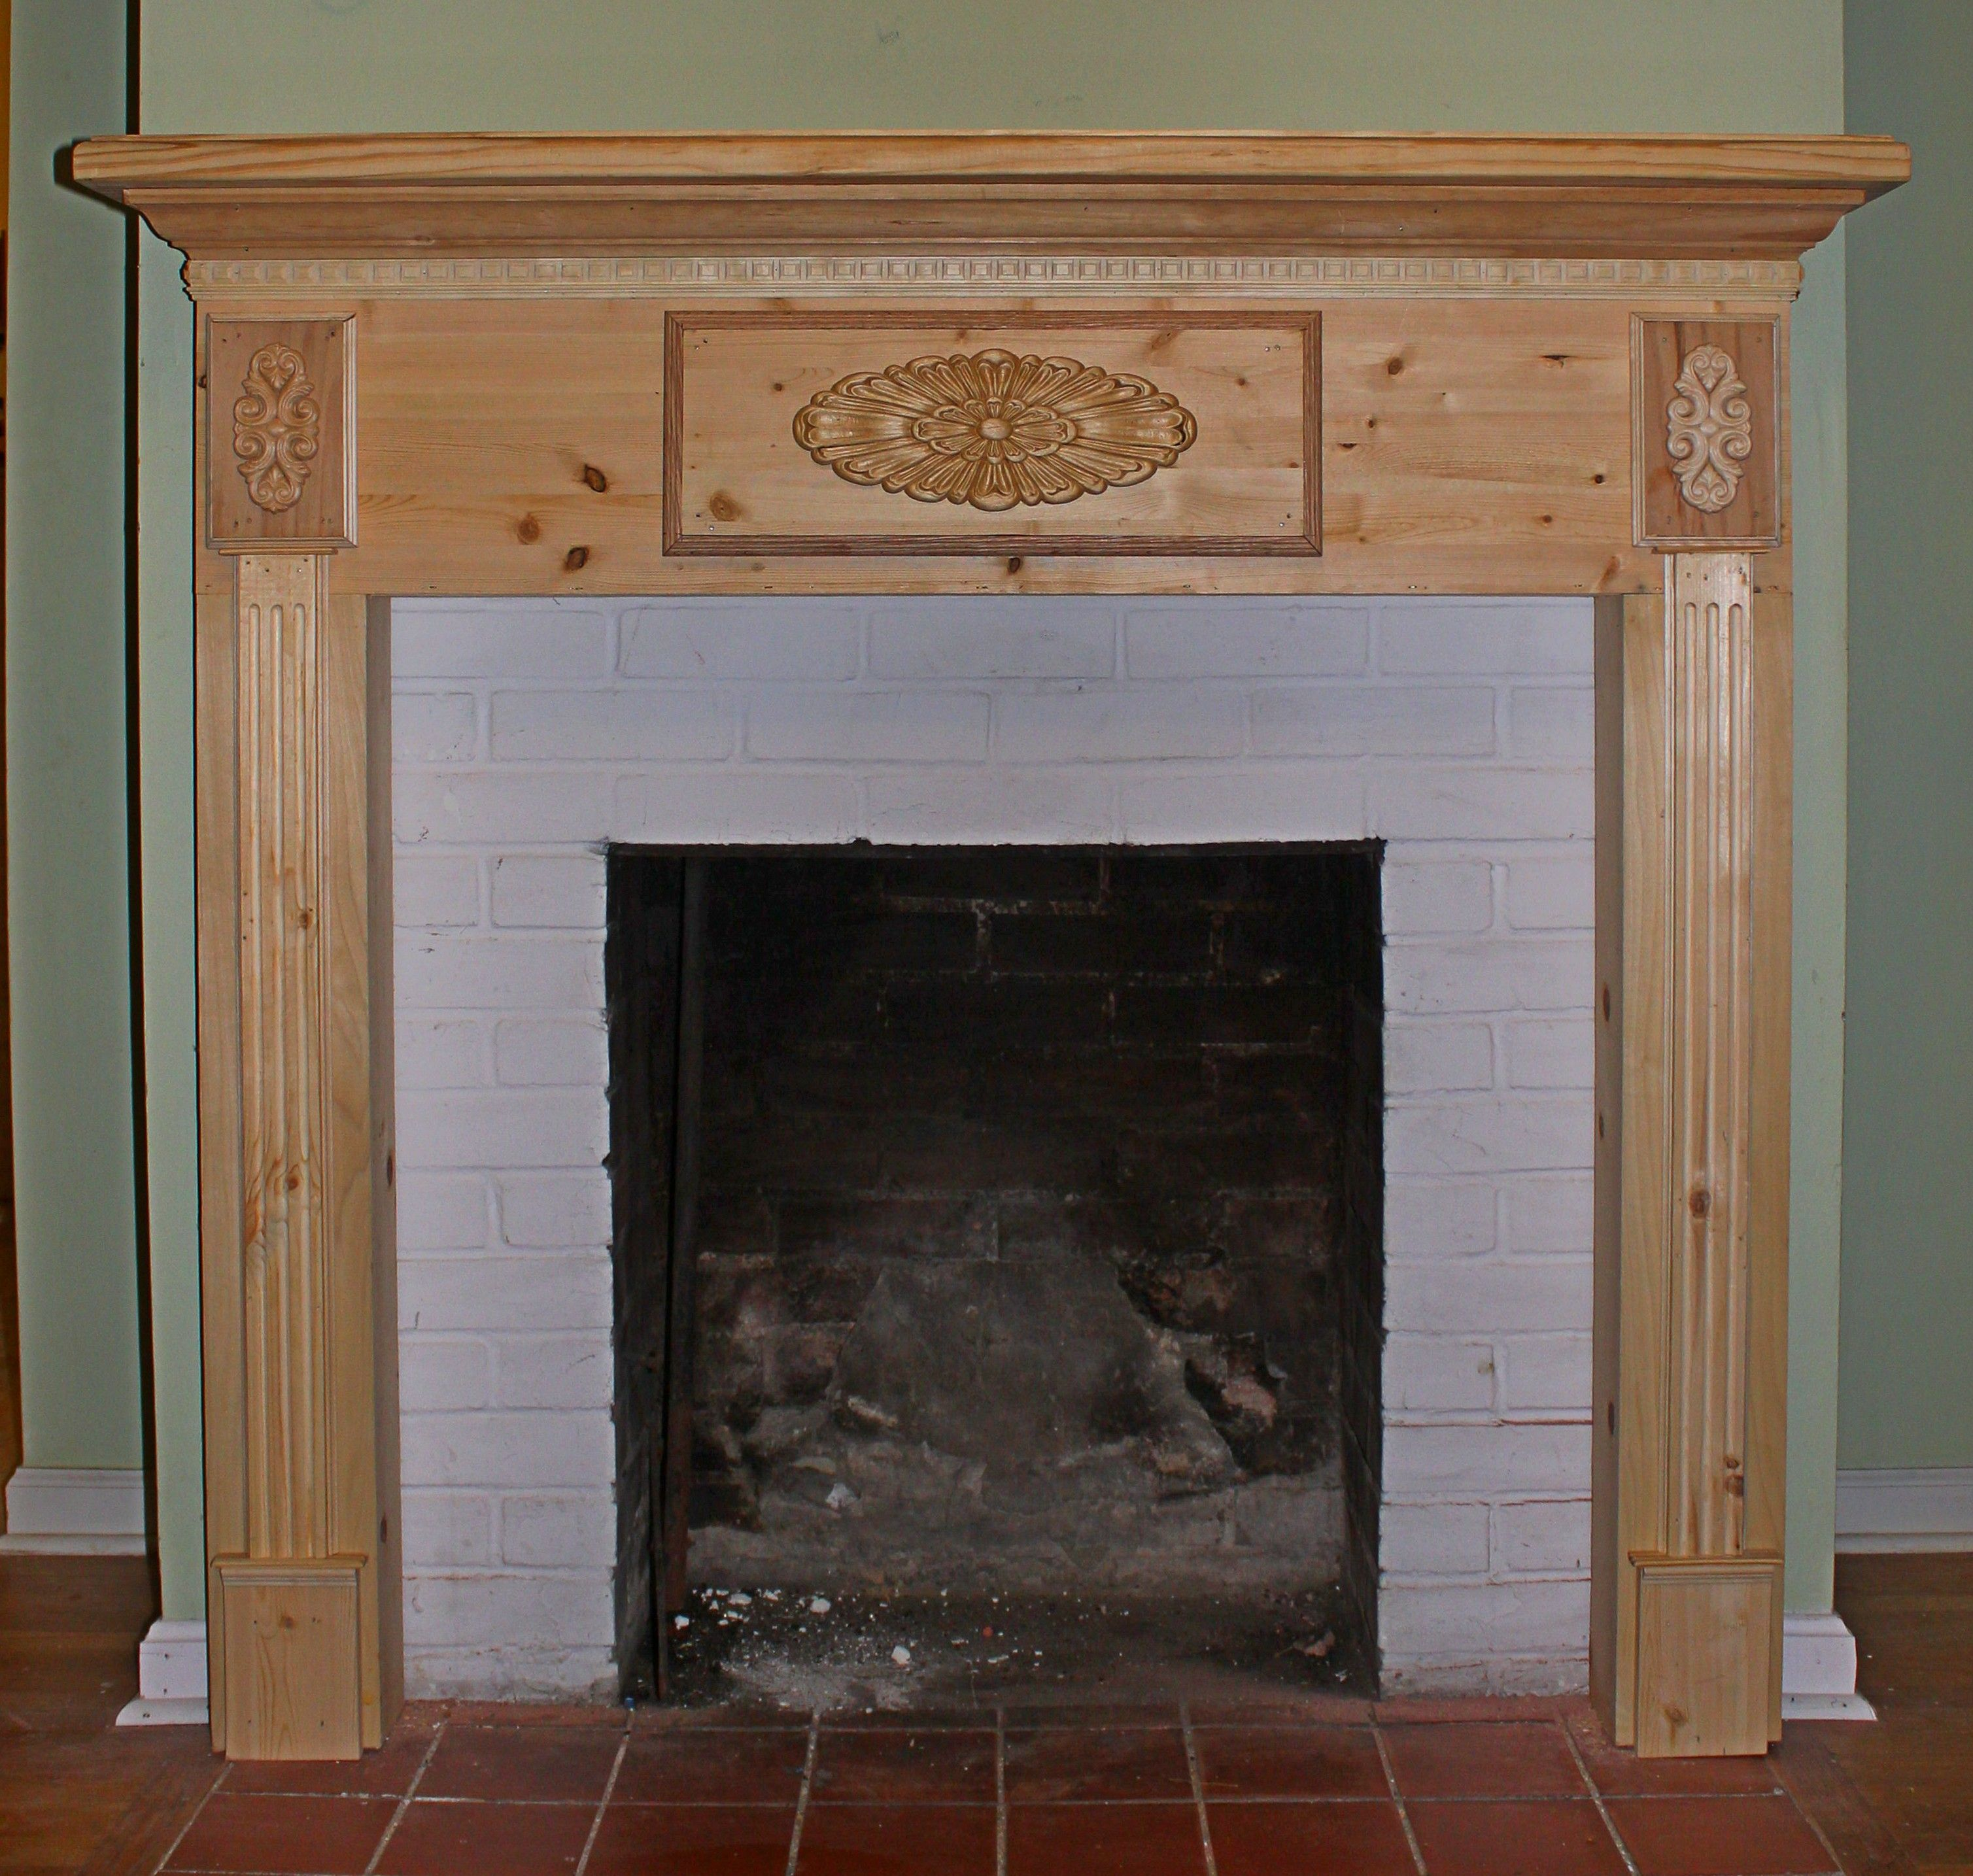 Accessories furniturecaptivating natural wood custom made accessories furniturecaptivating natural wood custom made fireplace mantels with white fireplace wall teraionfo